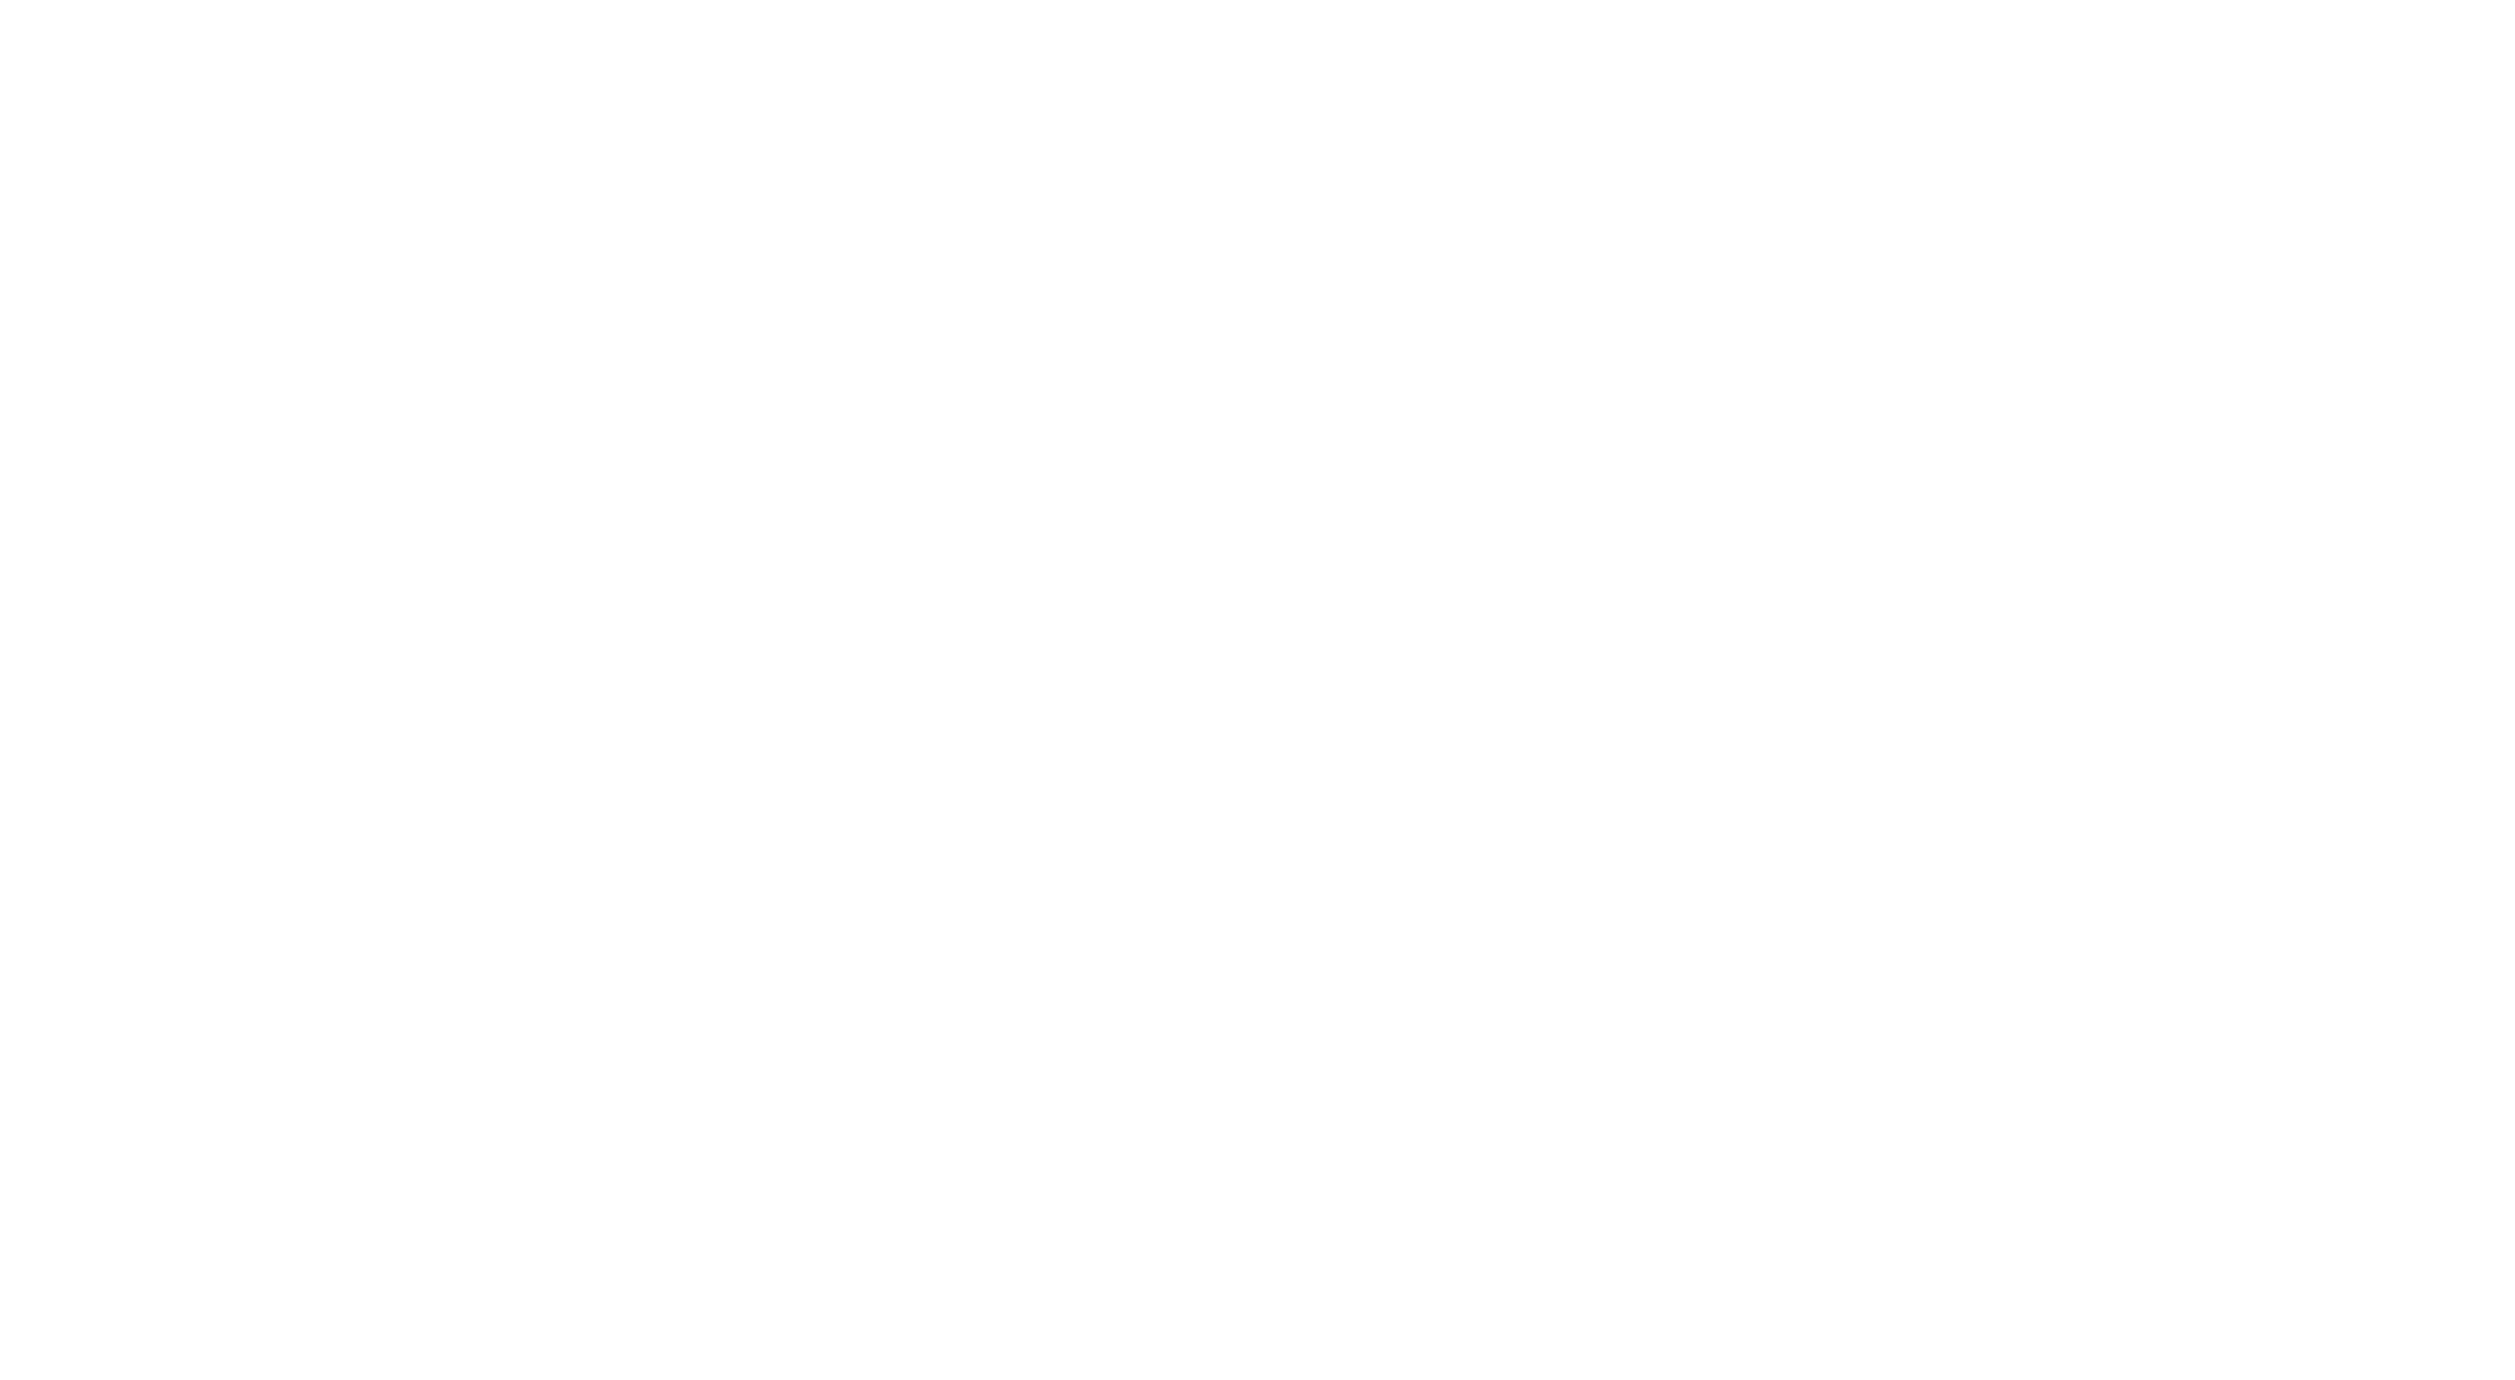 Stone Empire Pictures